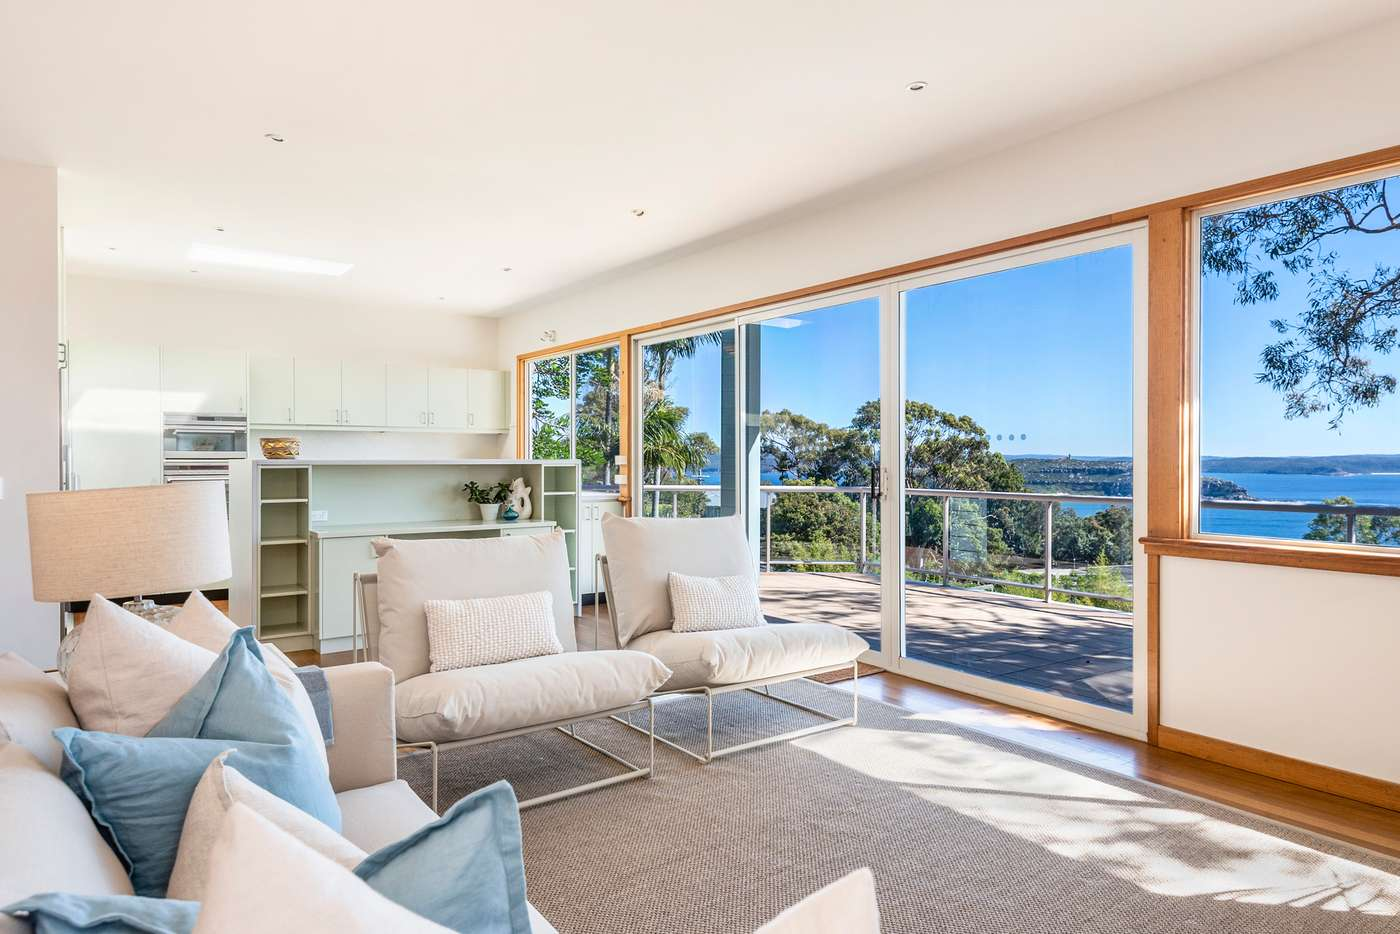 Sixth view of Homely house listing, 28 Pacific Road, Palm Beach NSW 2108